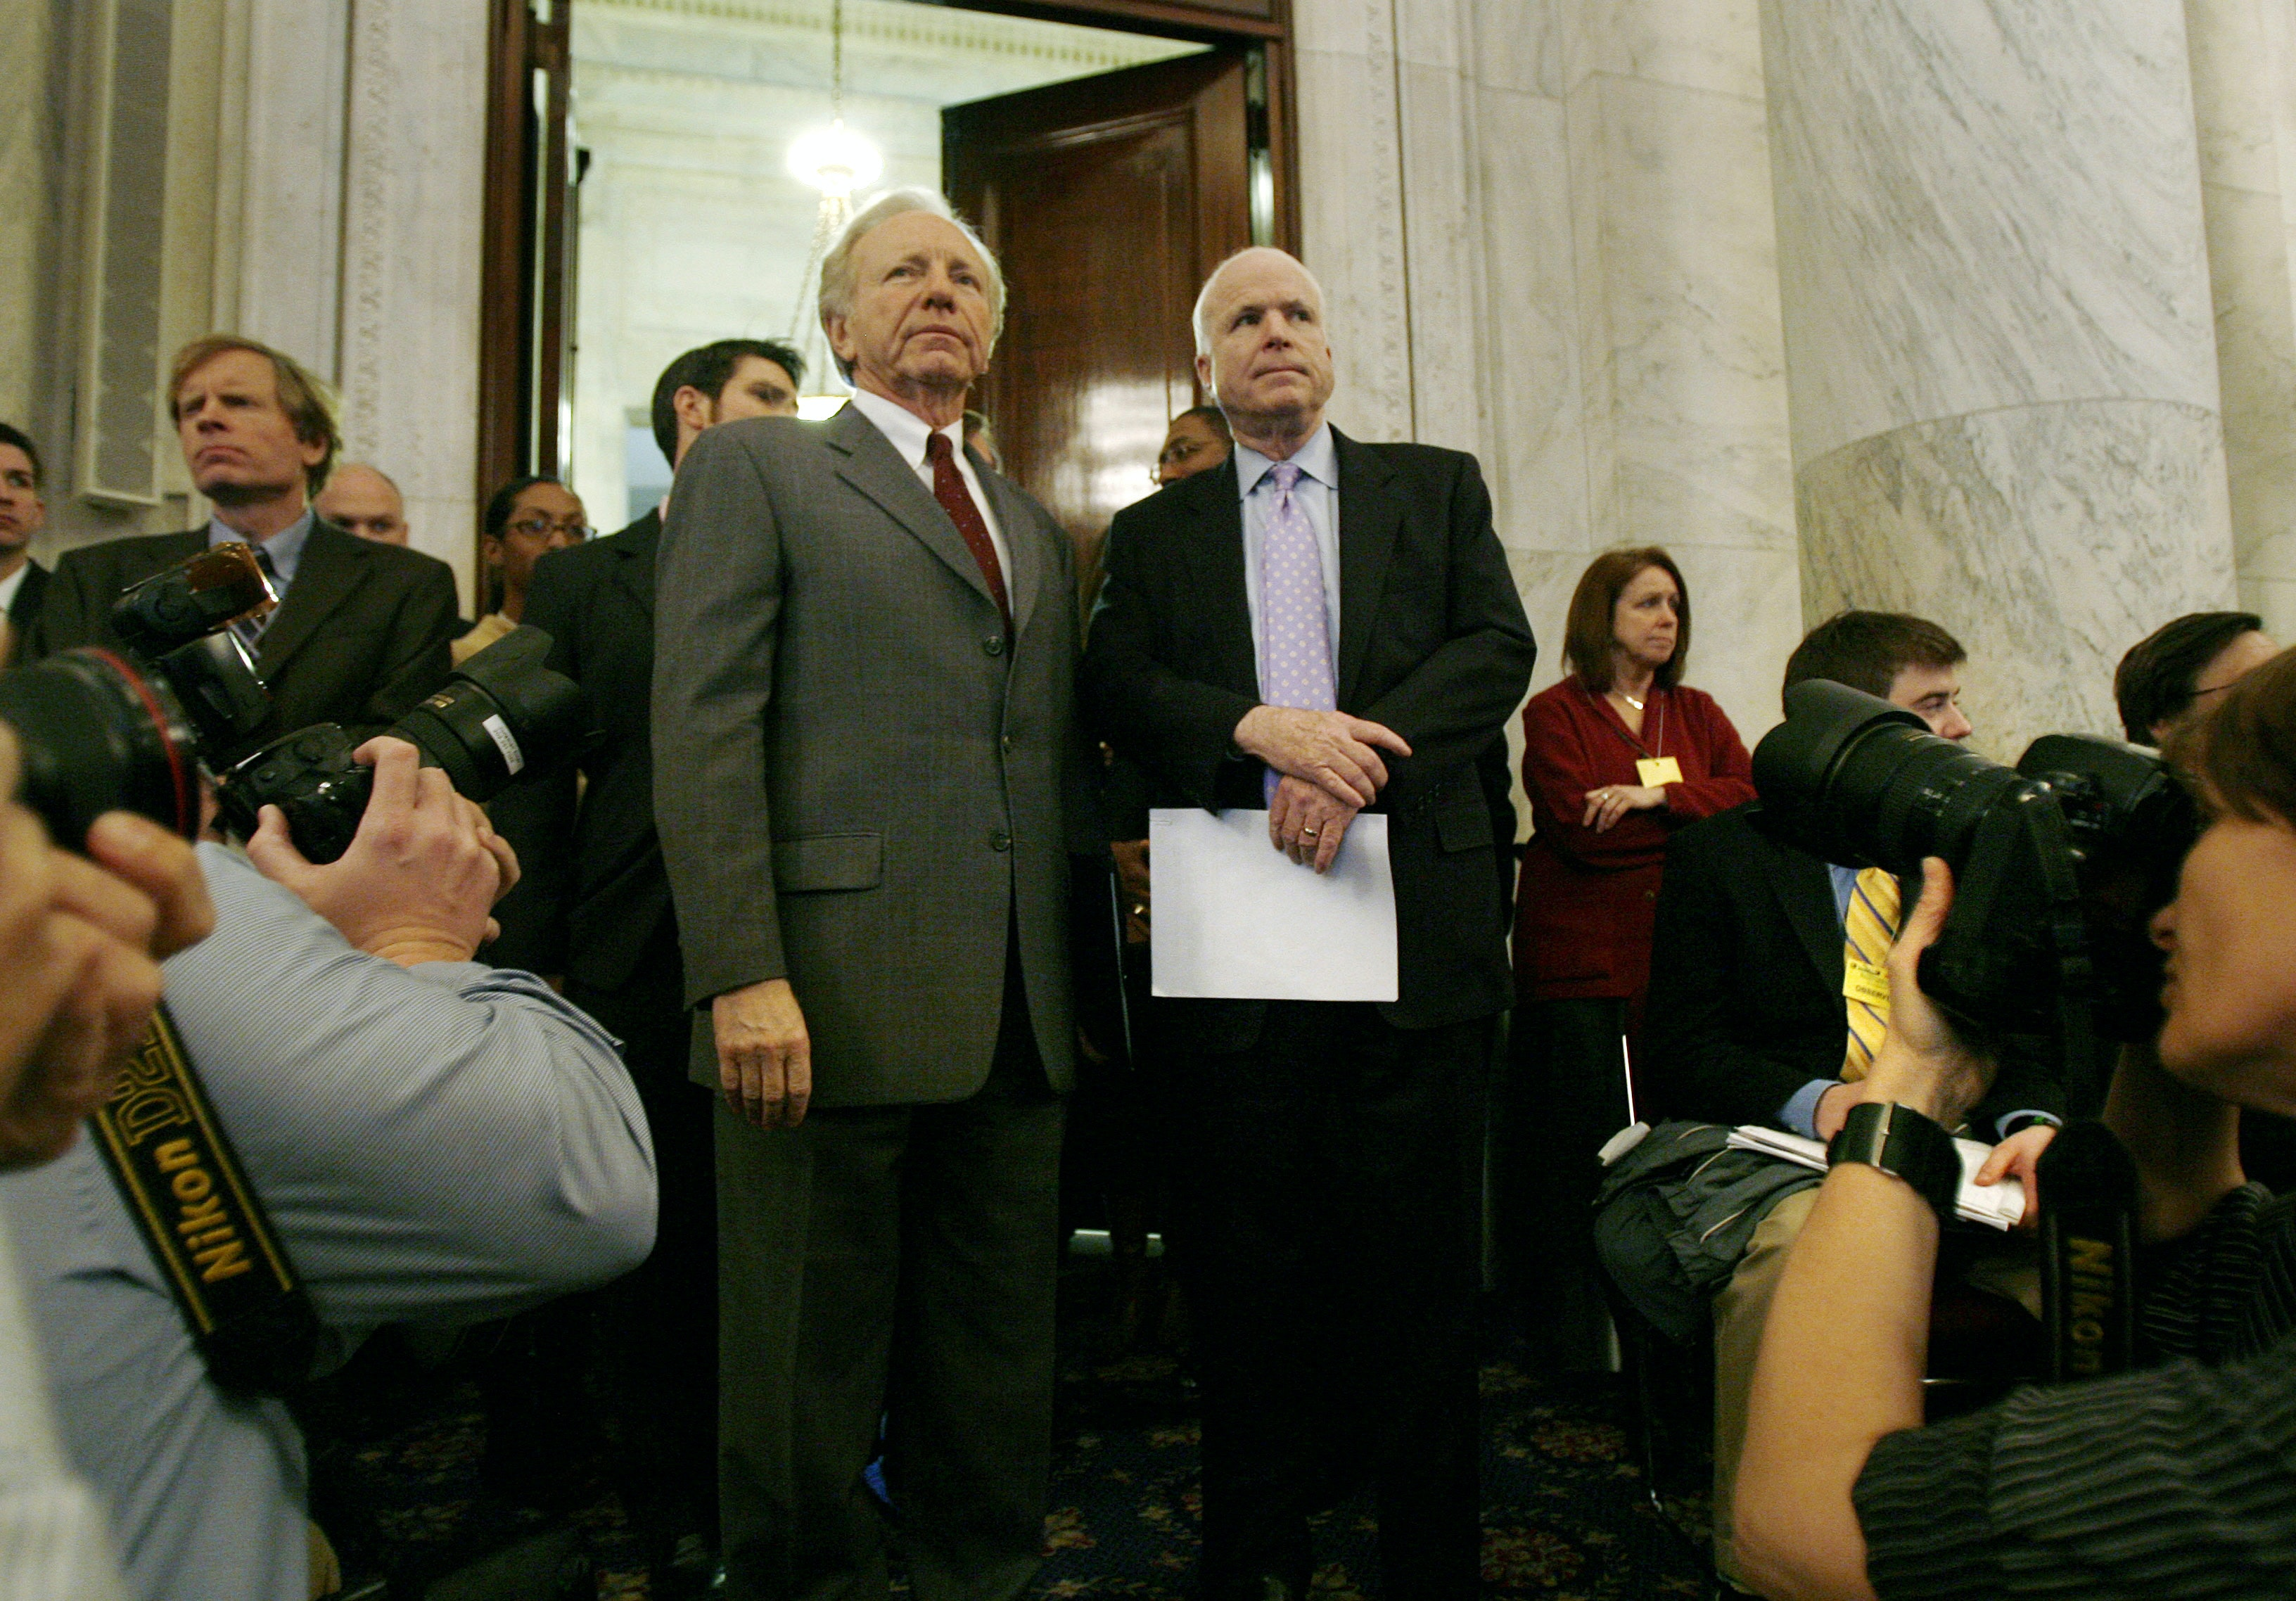 Will John McCain be the last Republican leader in the Senate to address climate change?